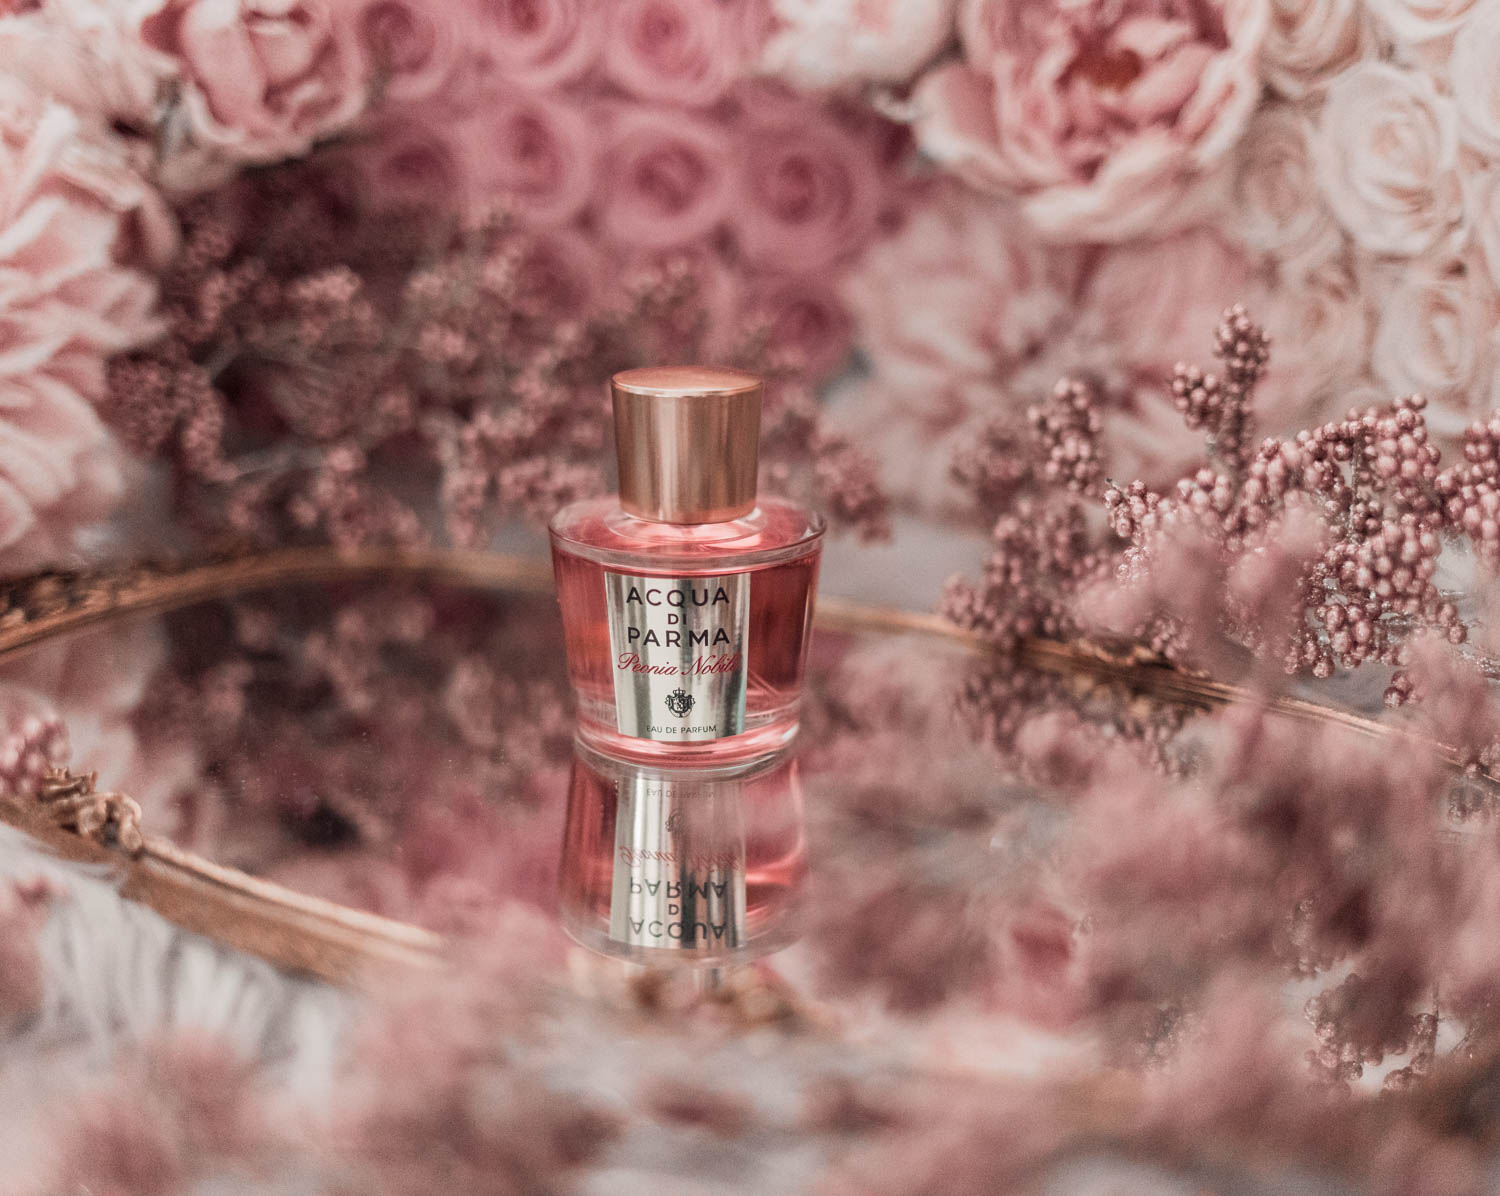 Feminine fashion blogger Elizabeth Hugen of Lizzie in Lace shares the best feminine perfumes and her girly fragrance collection including Acqua di Parma Peonia Nobile